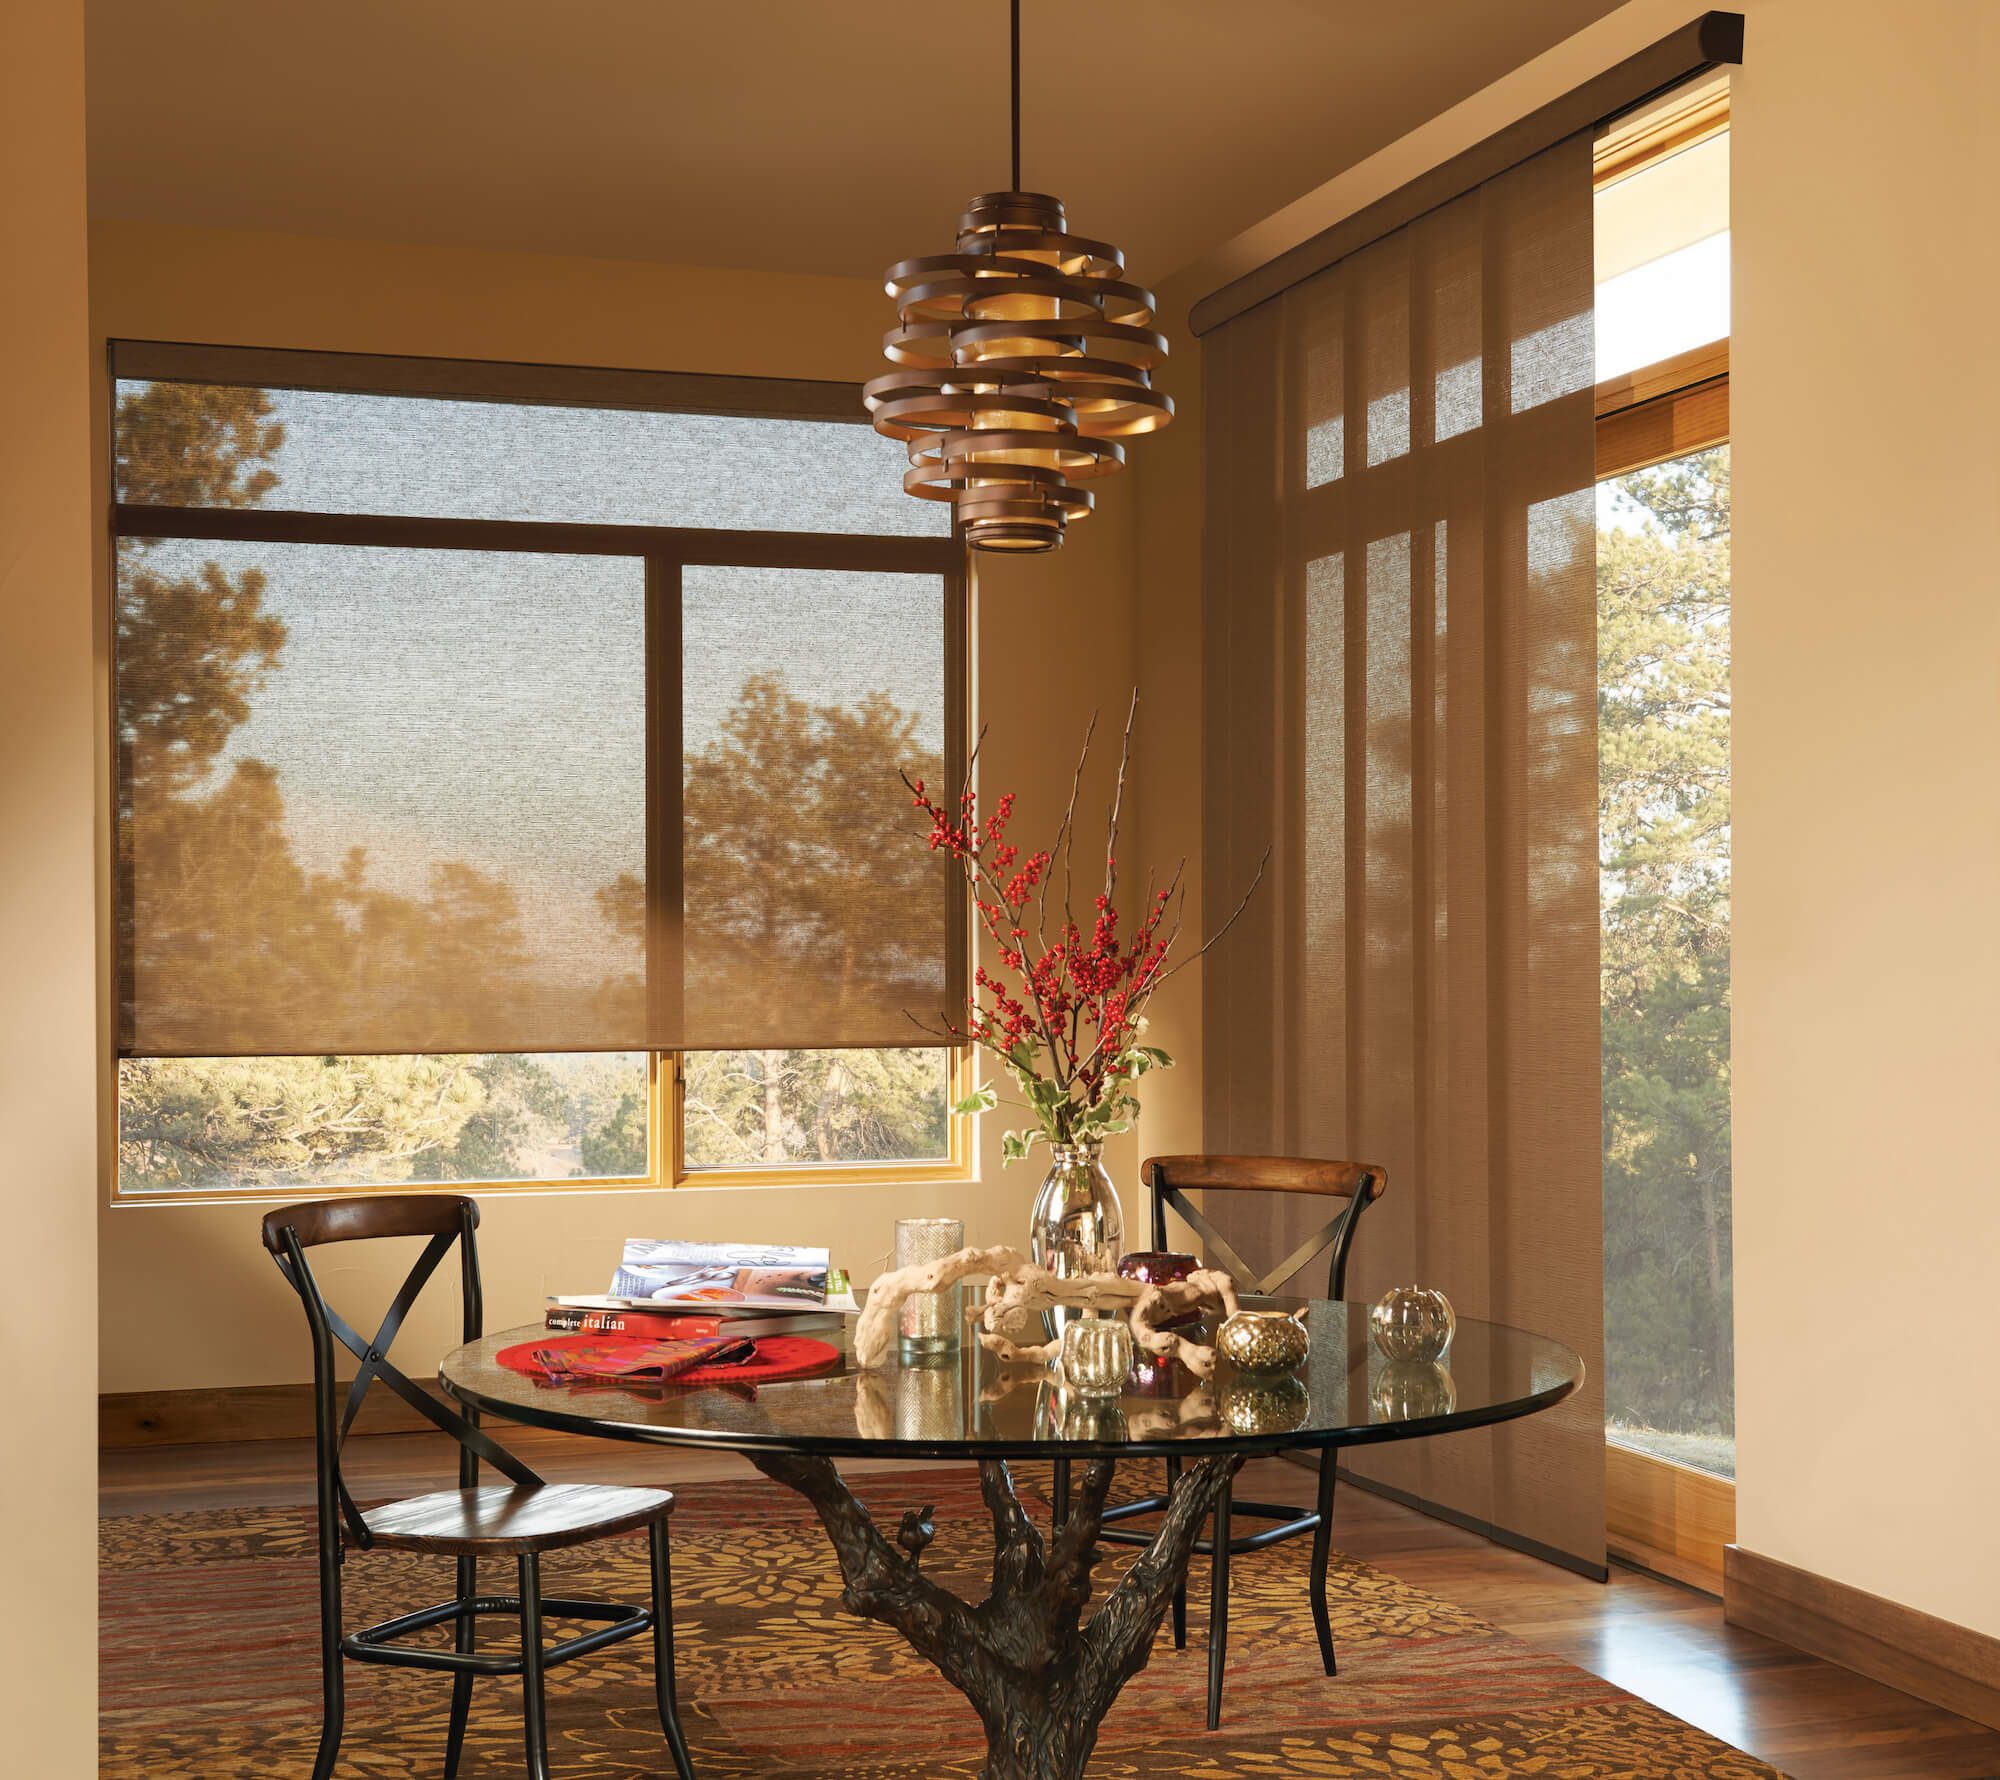 Dining Room Alustra Woven Textures and Skyline Panels looking out to woods